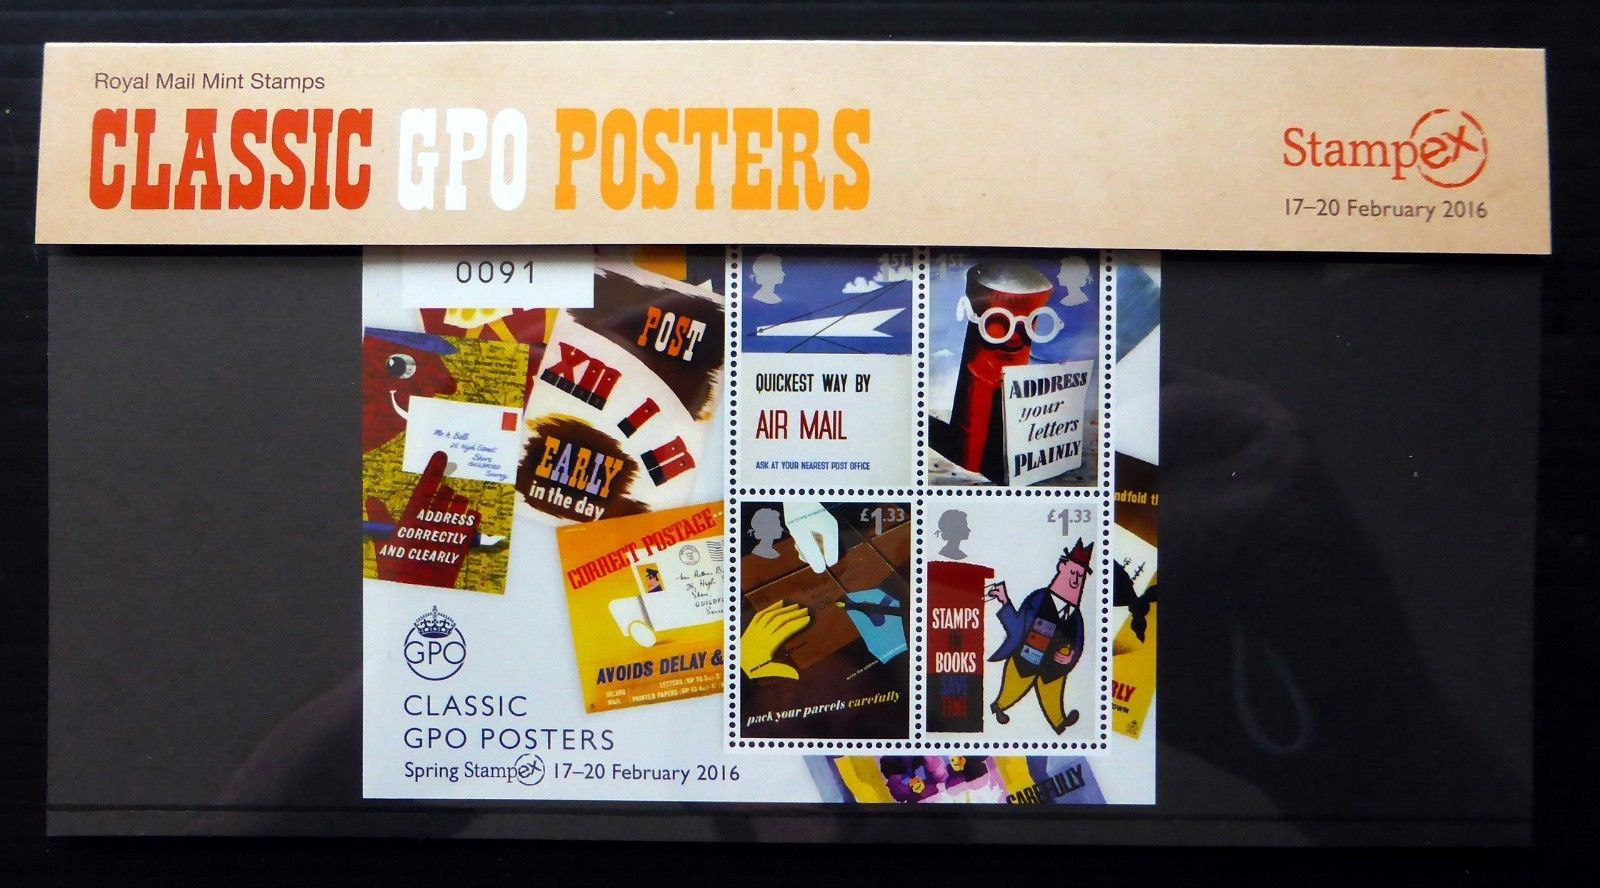 Classic GPO Posters Stampex miniature sheet